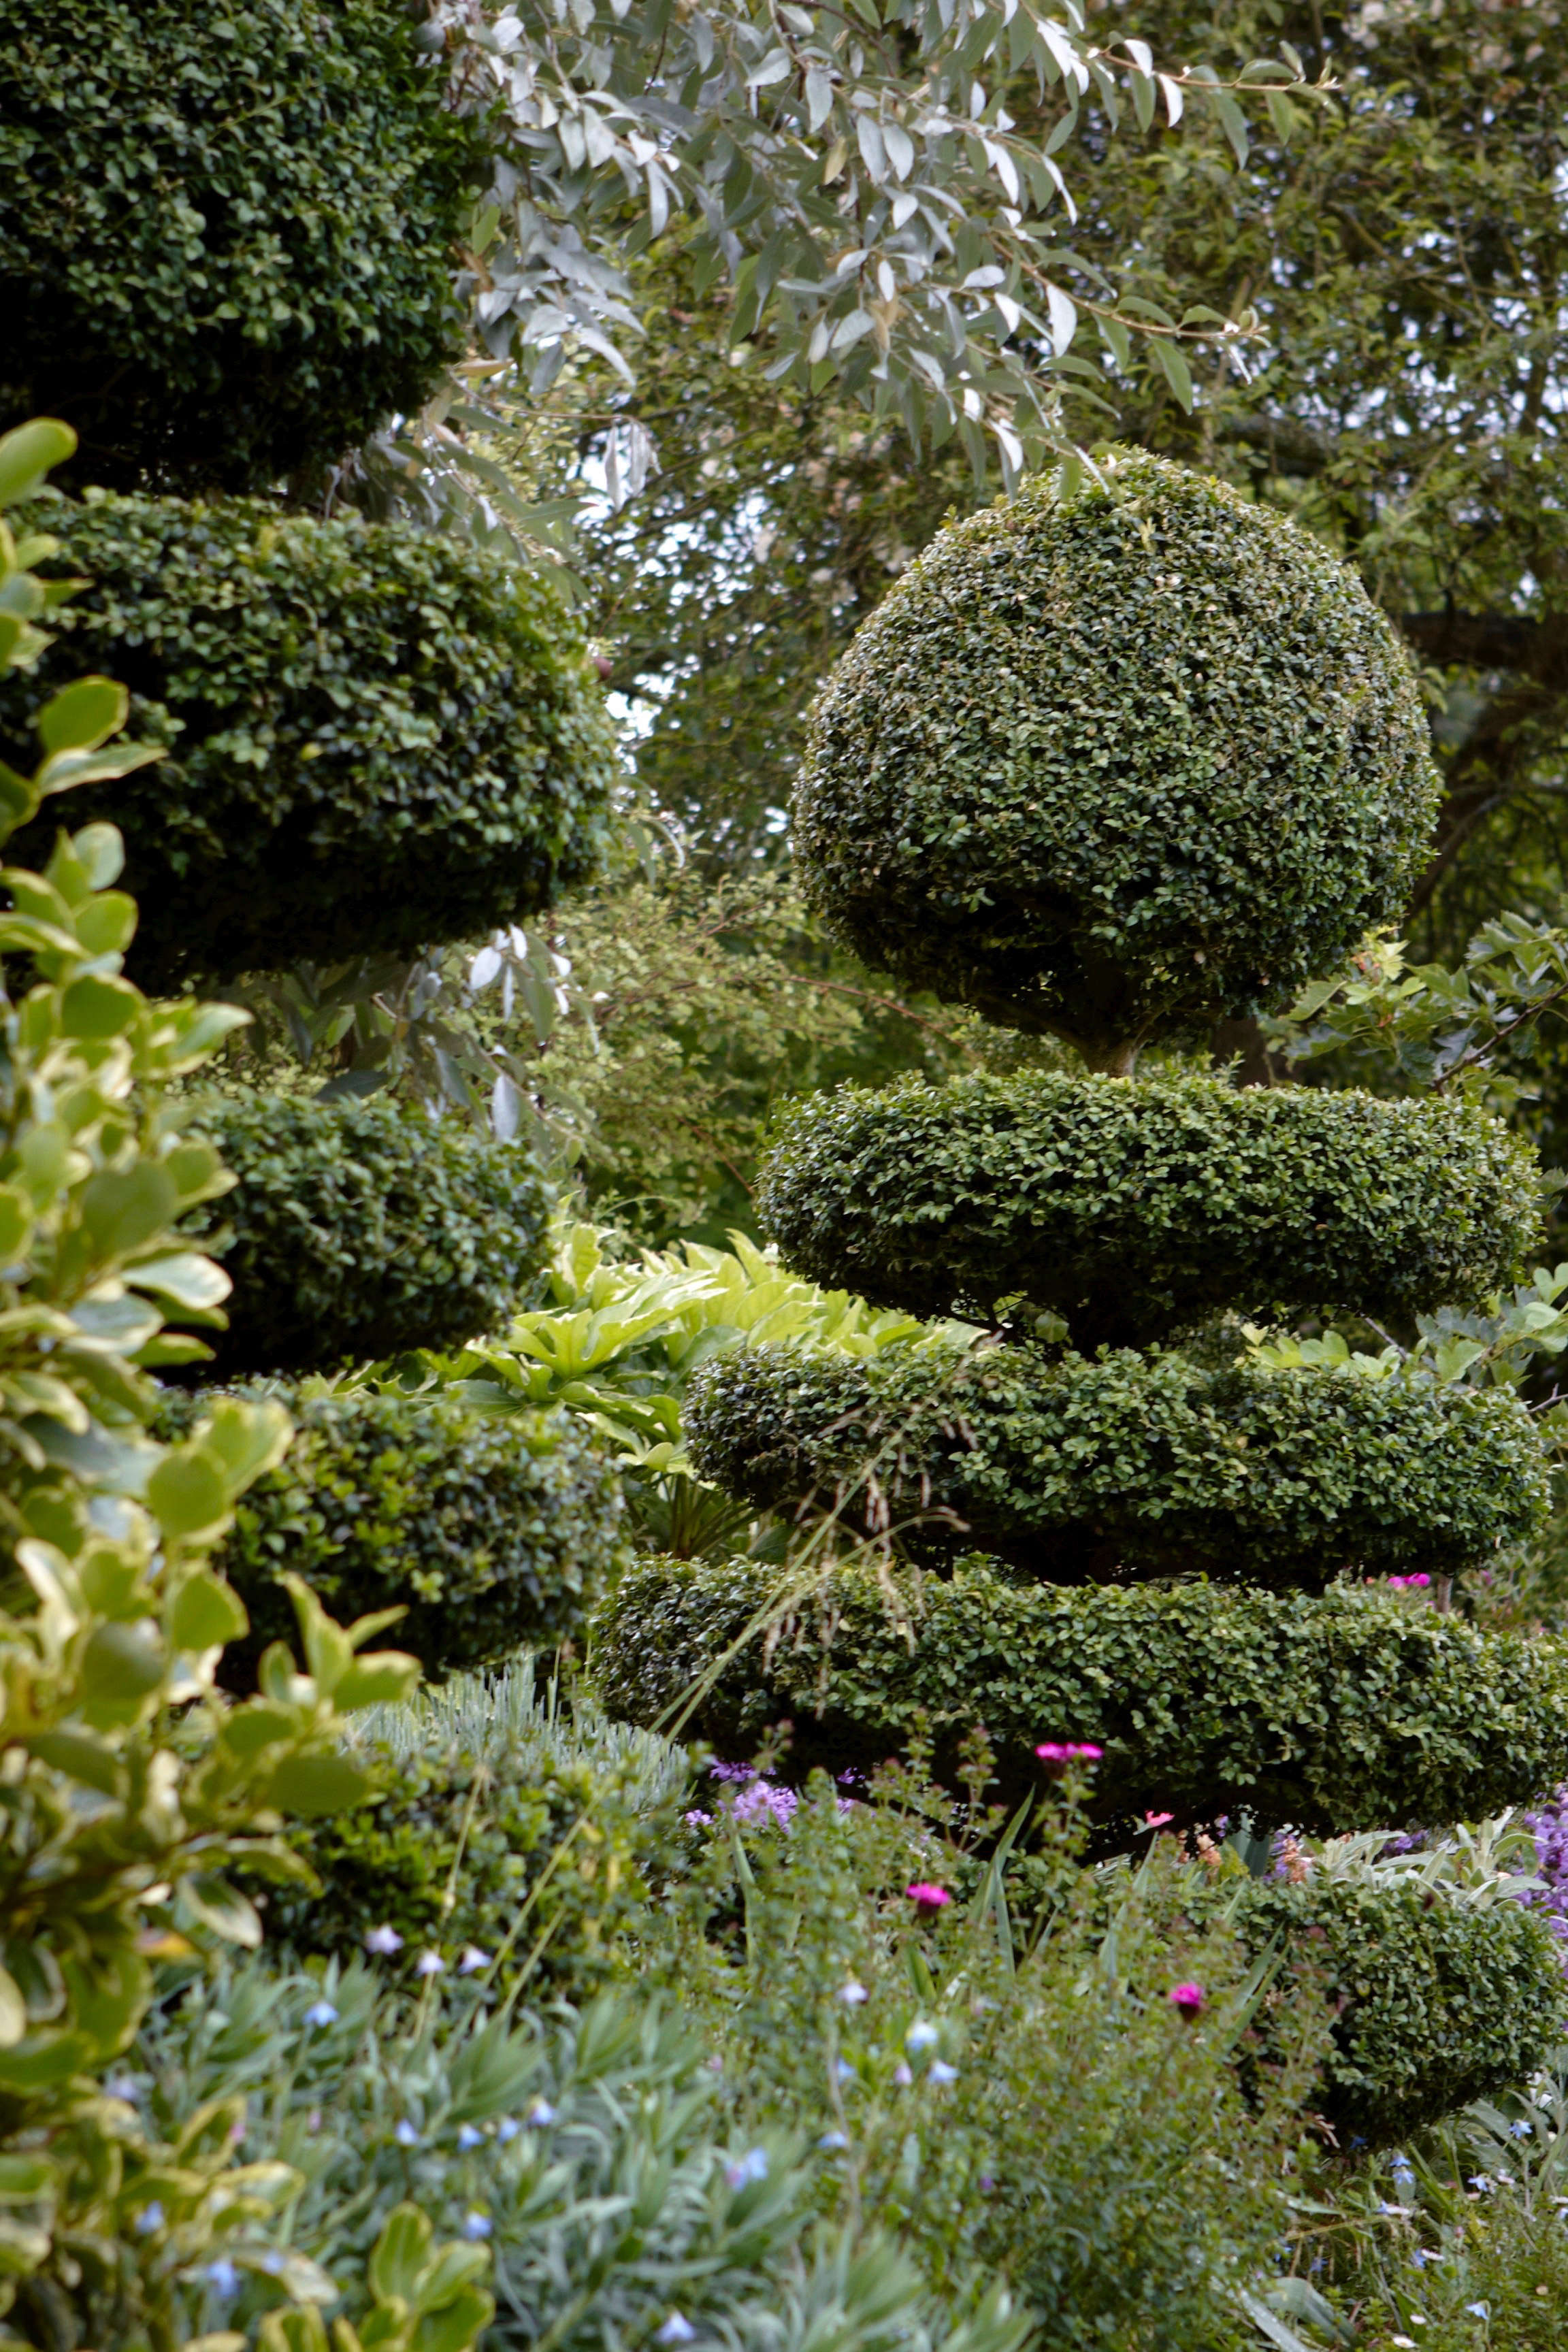 Above: While All Types Of Boxwood Are Vulnerable, Andrea Filippone, Who  Specializes In Growing Boxwood And Has Been Studying The Blight, Says  English ...